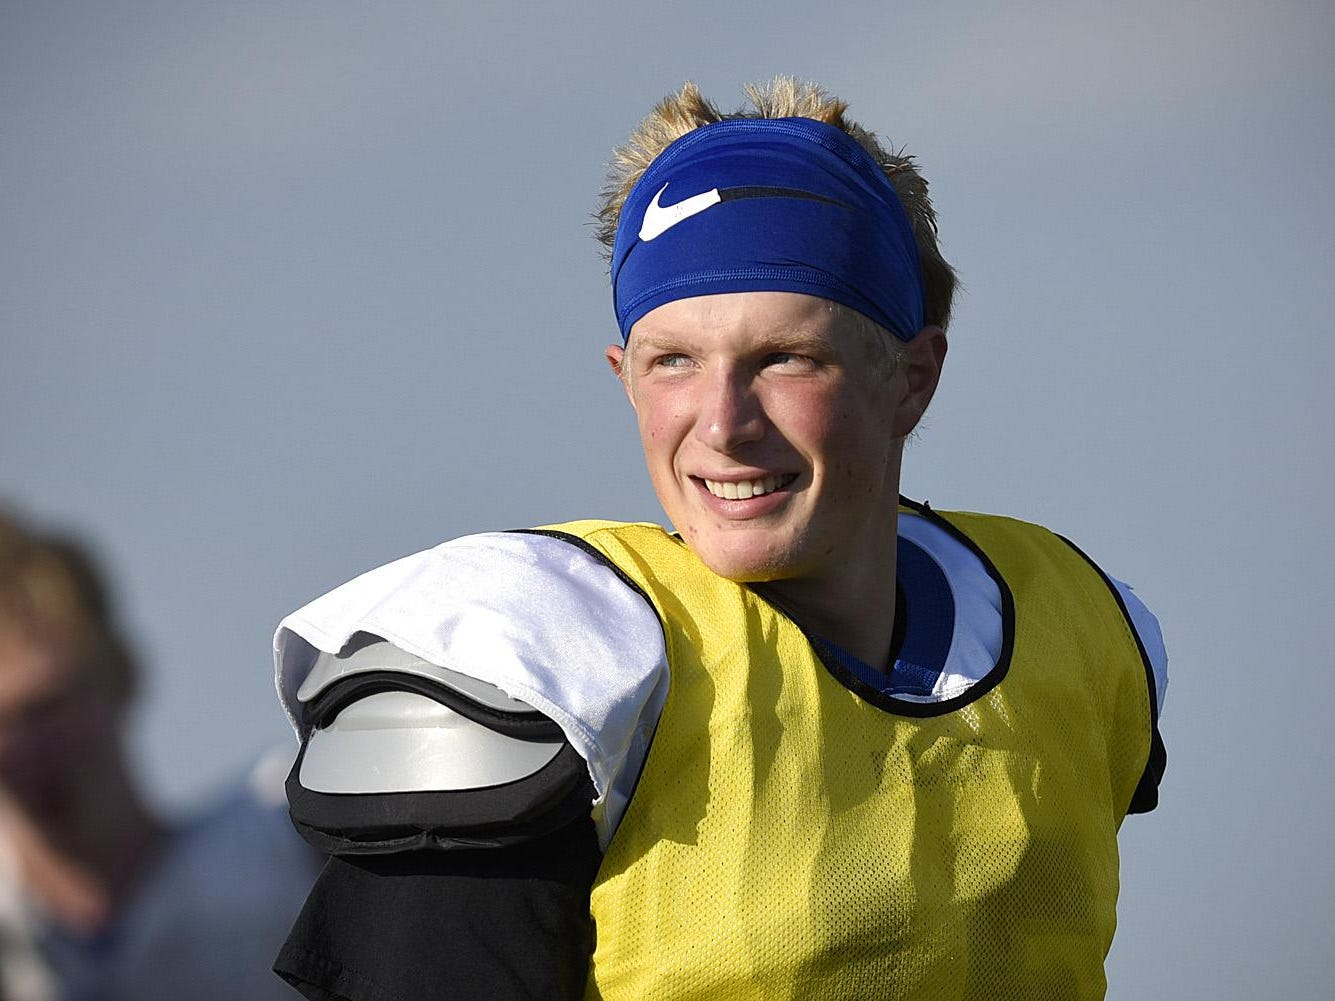 Foley quarterback Kyle Kipka comes back onto the field after a break during practice Monday in Foley.